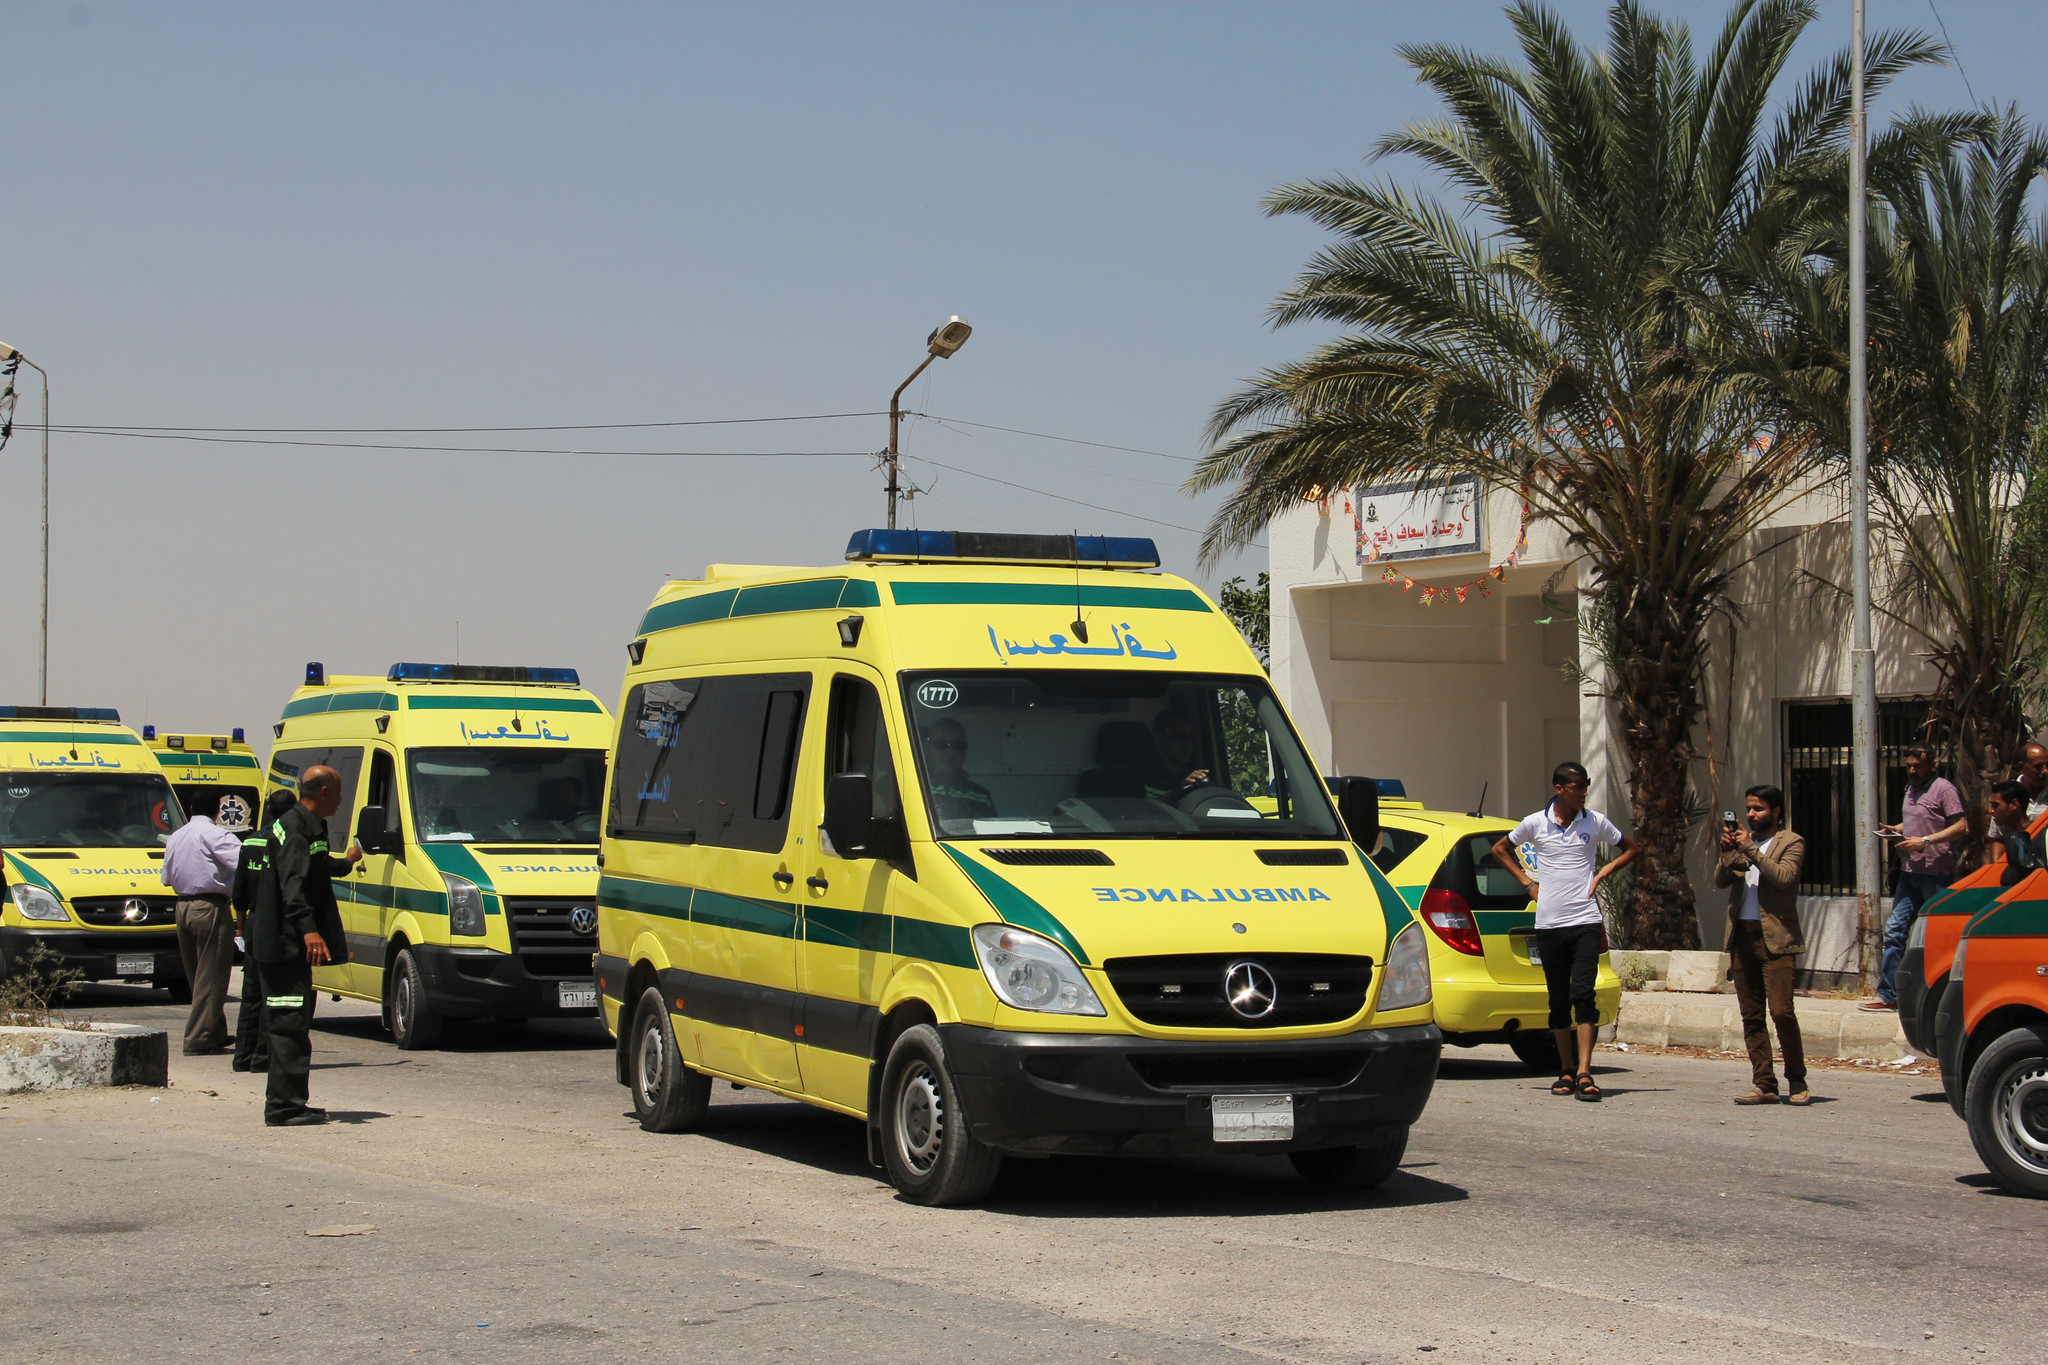 Archive photograph of ambulances. Credit: Muhamed Sabry/ AP